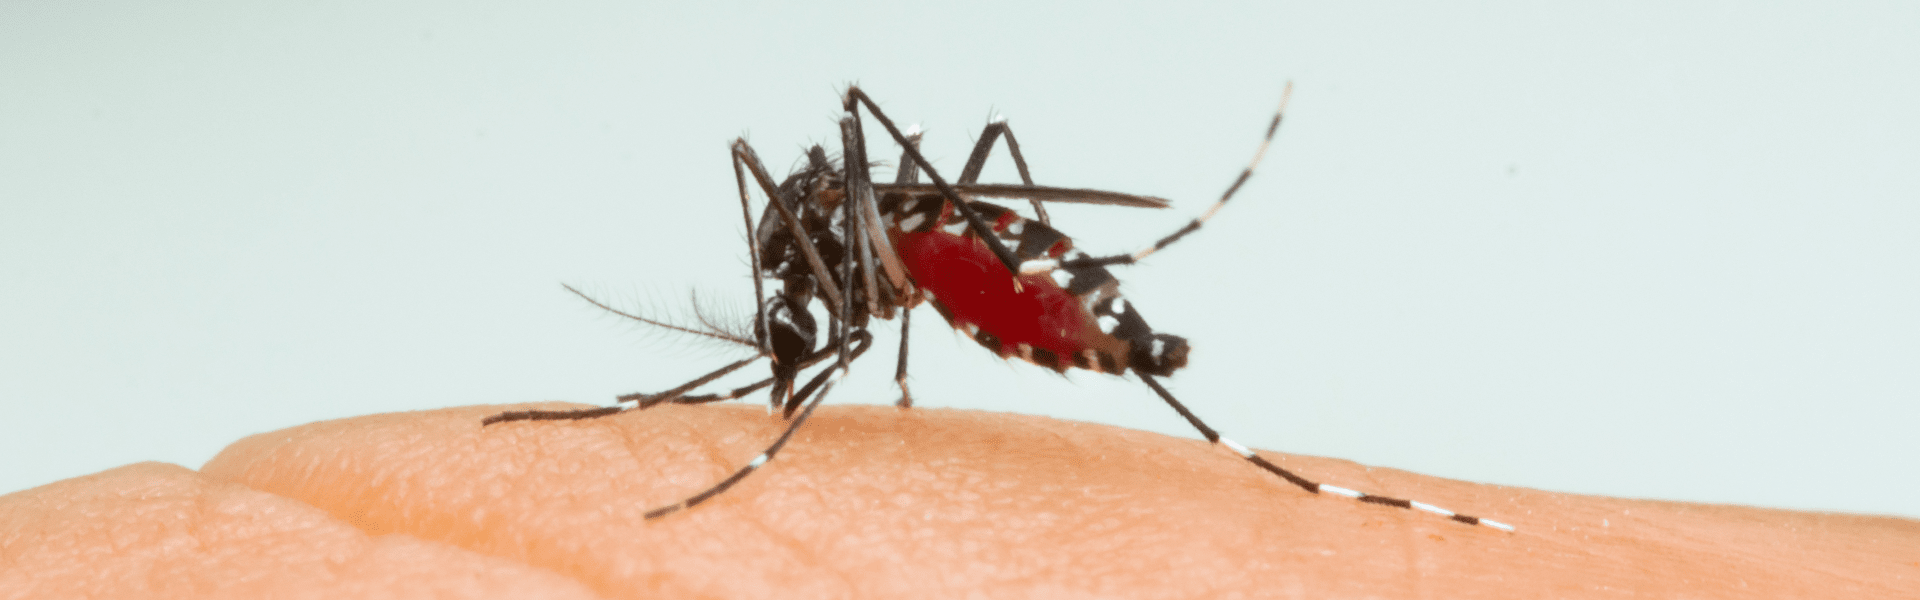 asian tiger mosquito biting person